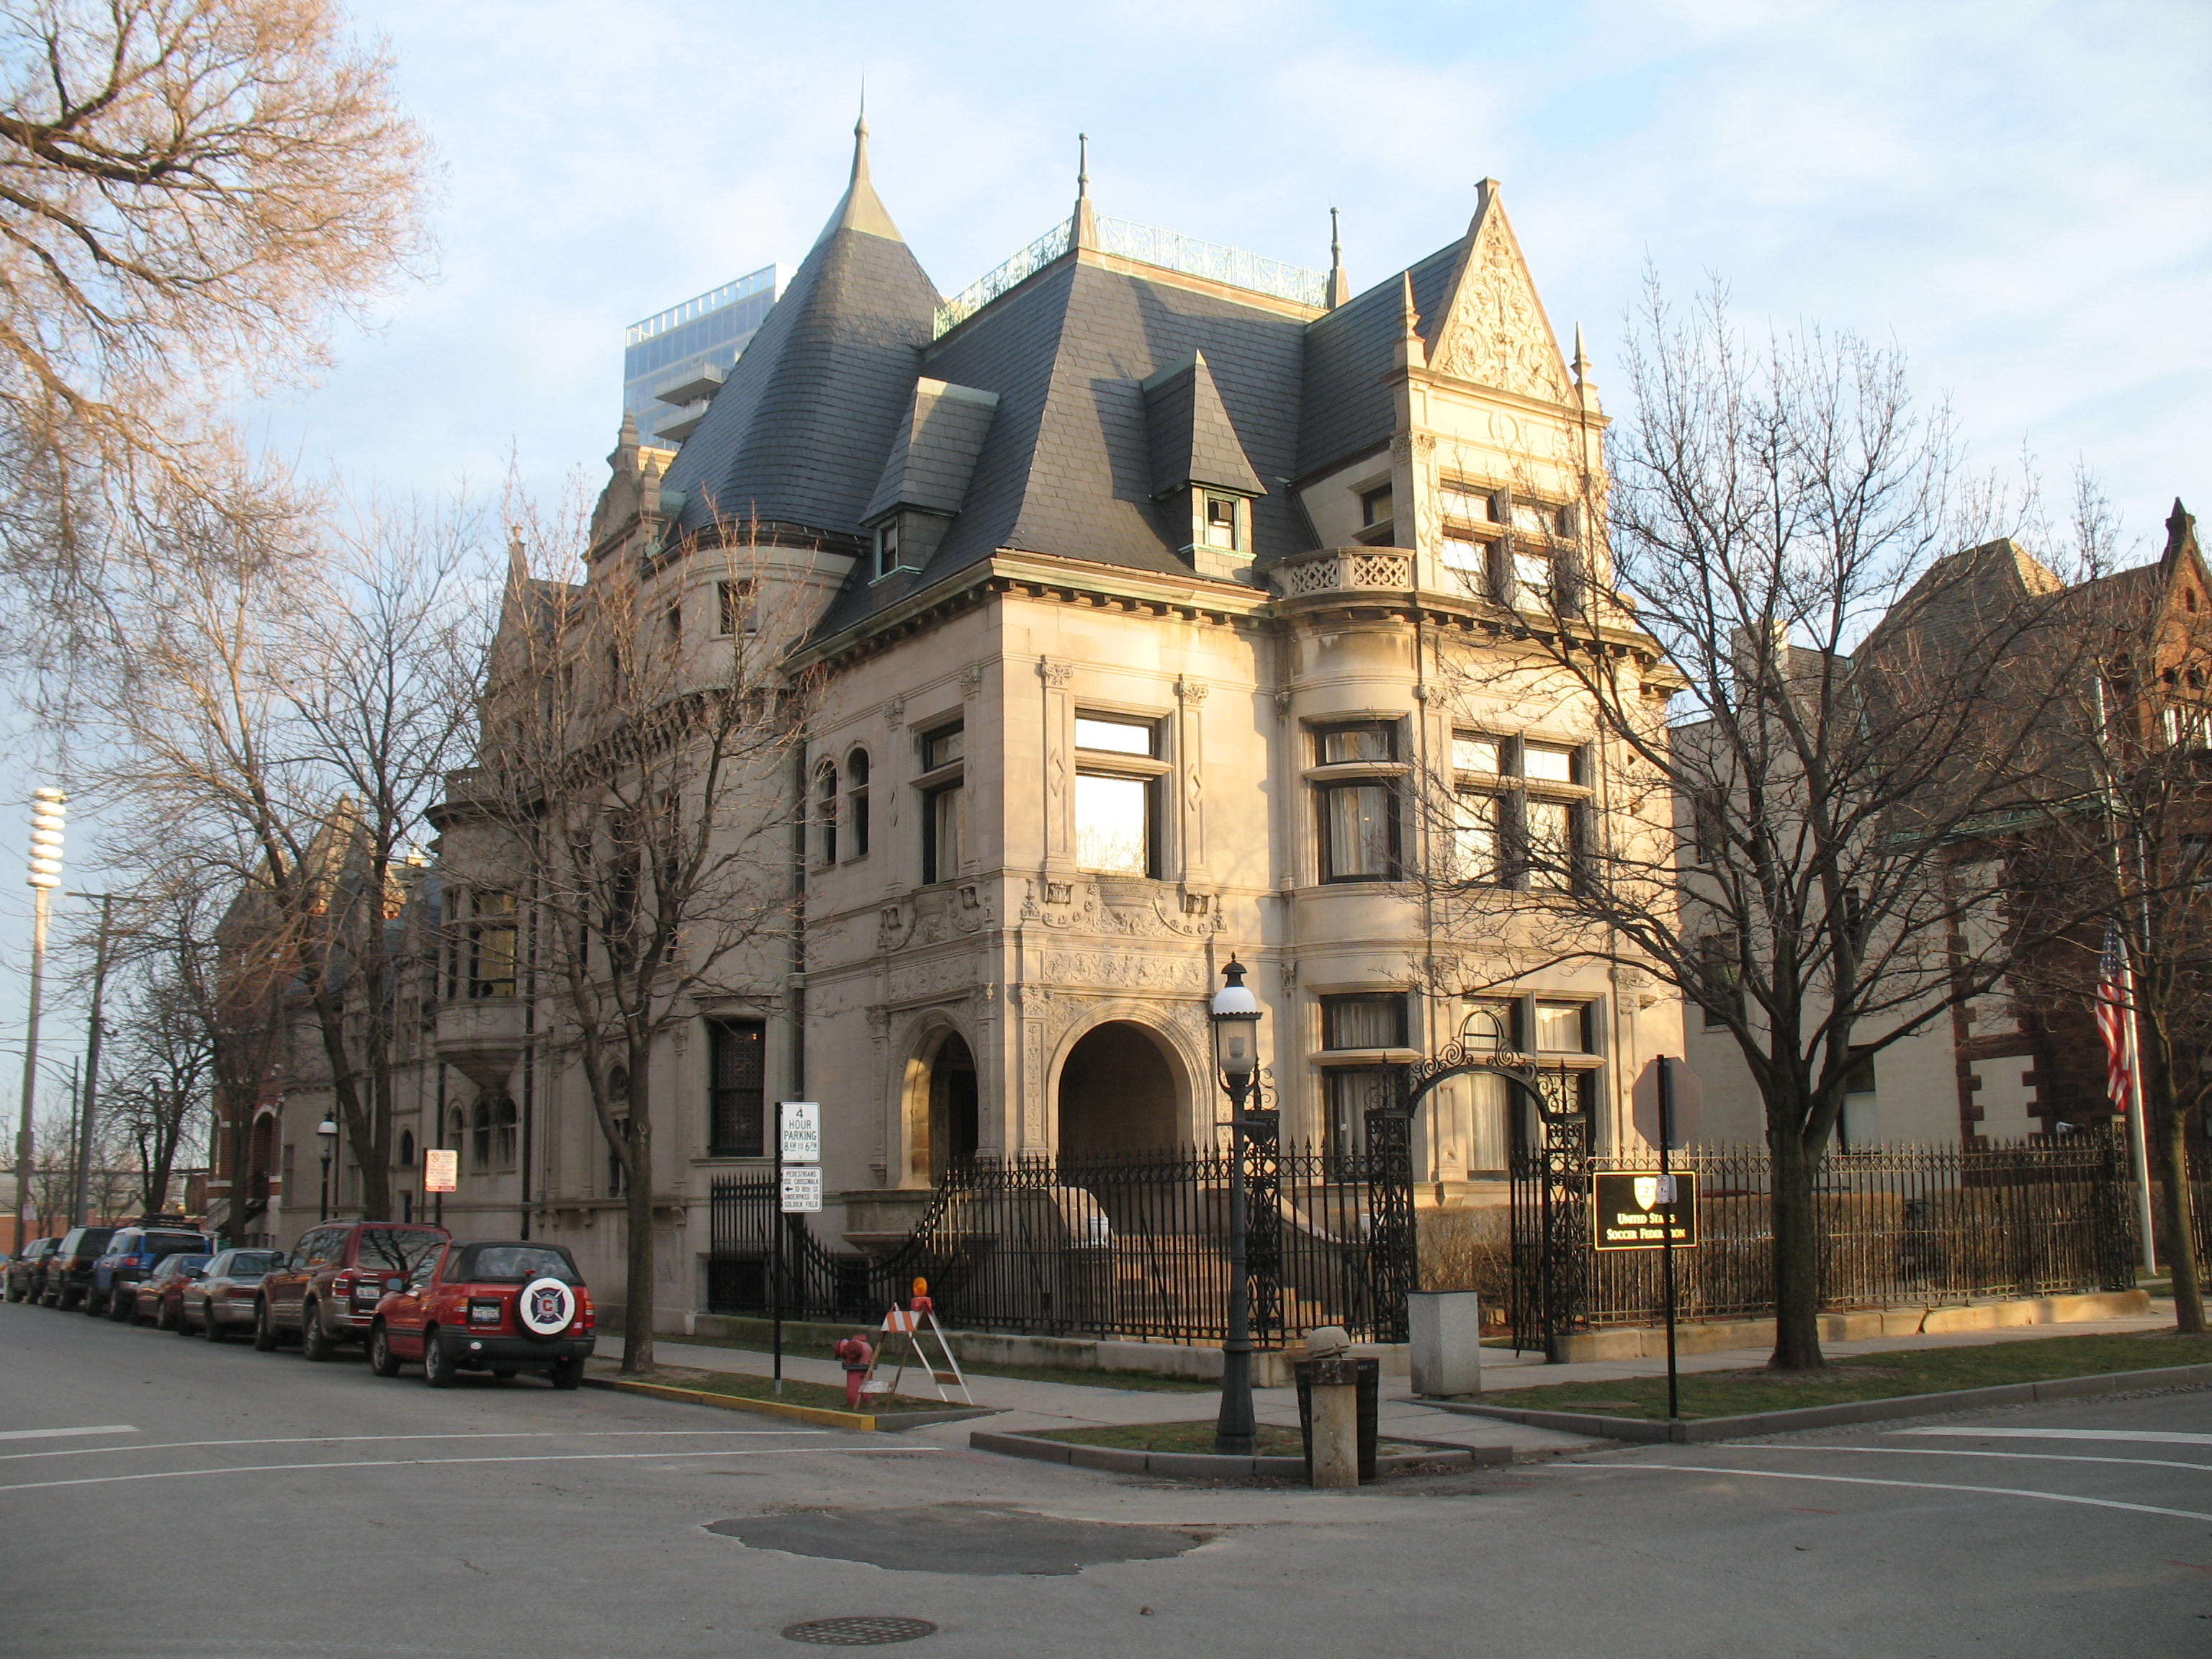 William W. Kimball House was completed in 1892, just six years after the Kimball Piano and Organ Factory was built.